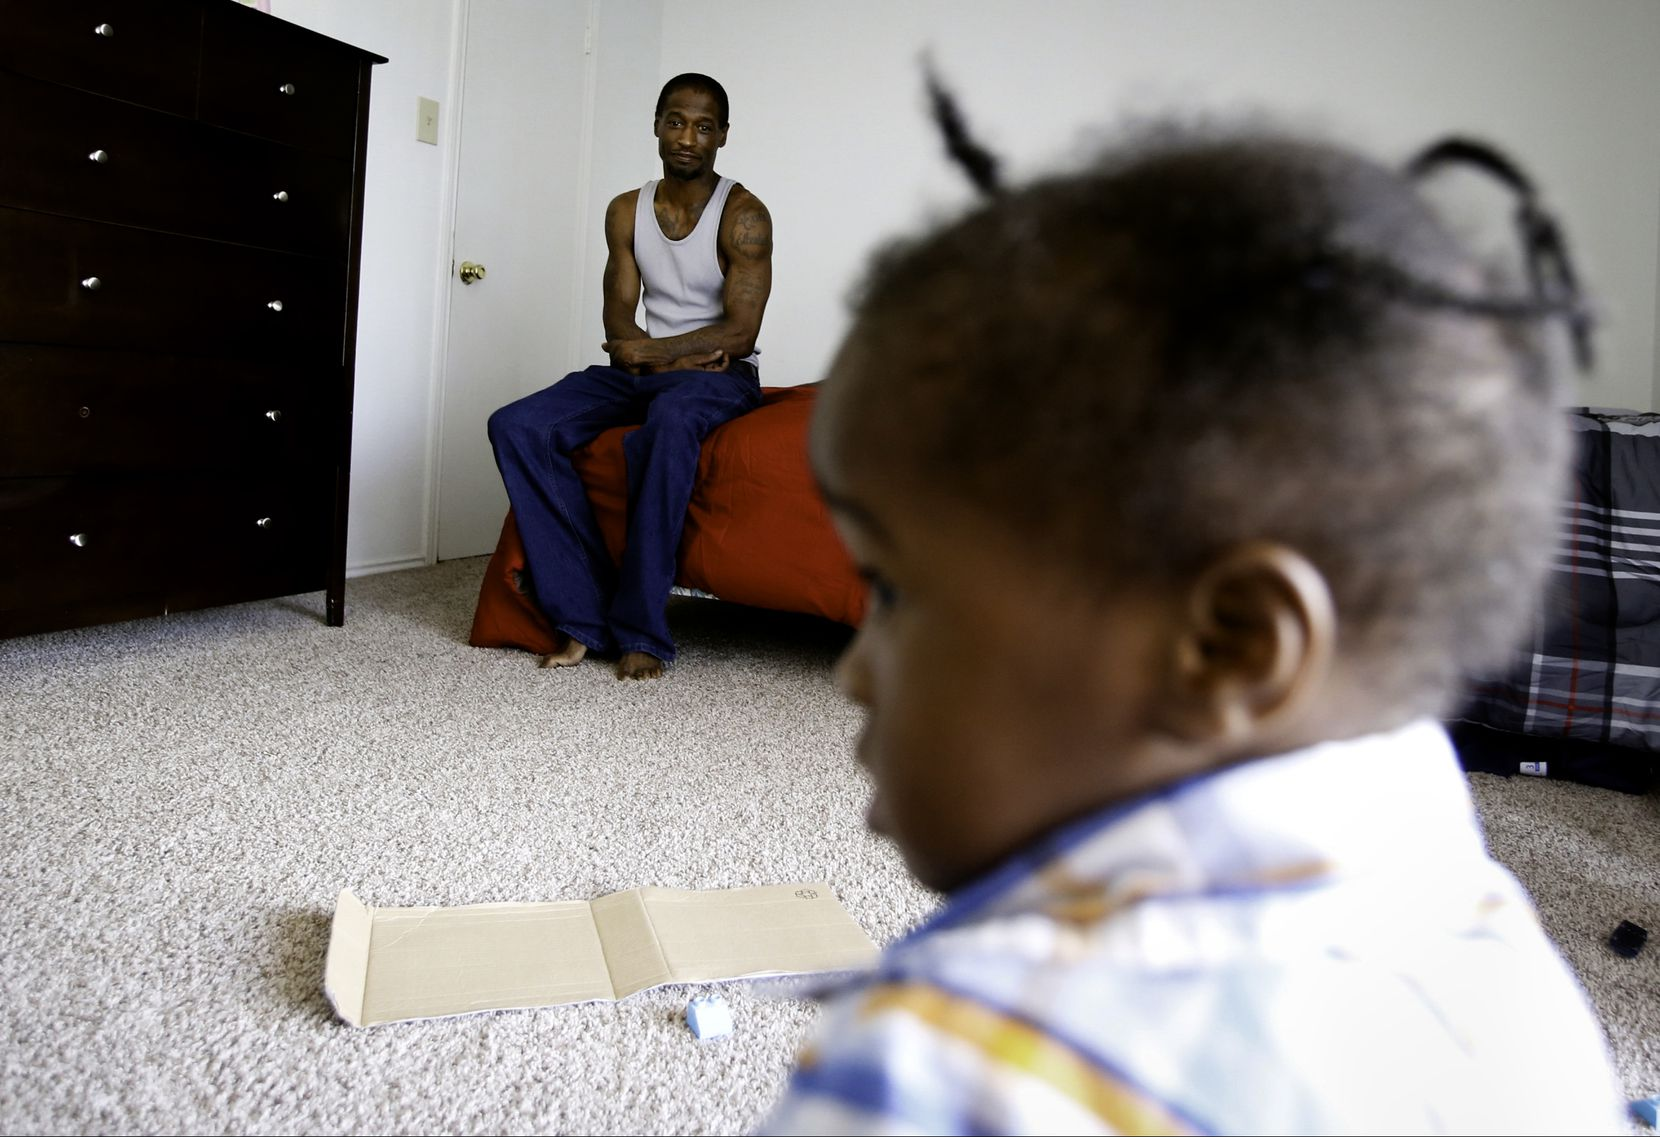 Joshua Miller watches Jordan play in their new apartment. After weeks of living in a room at The Family Place's men's shelter, Miller says, having a place for him and his son feels like a weight has been lifted off his shoulders. (Tailyr Irvine/The Dallas Morning News)